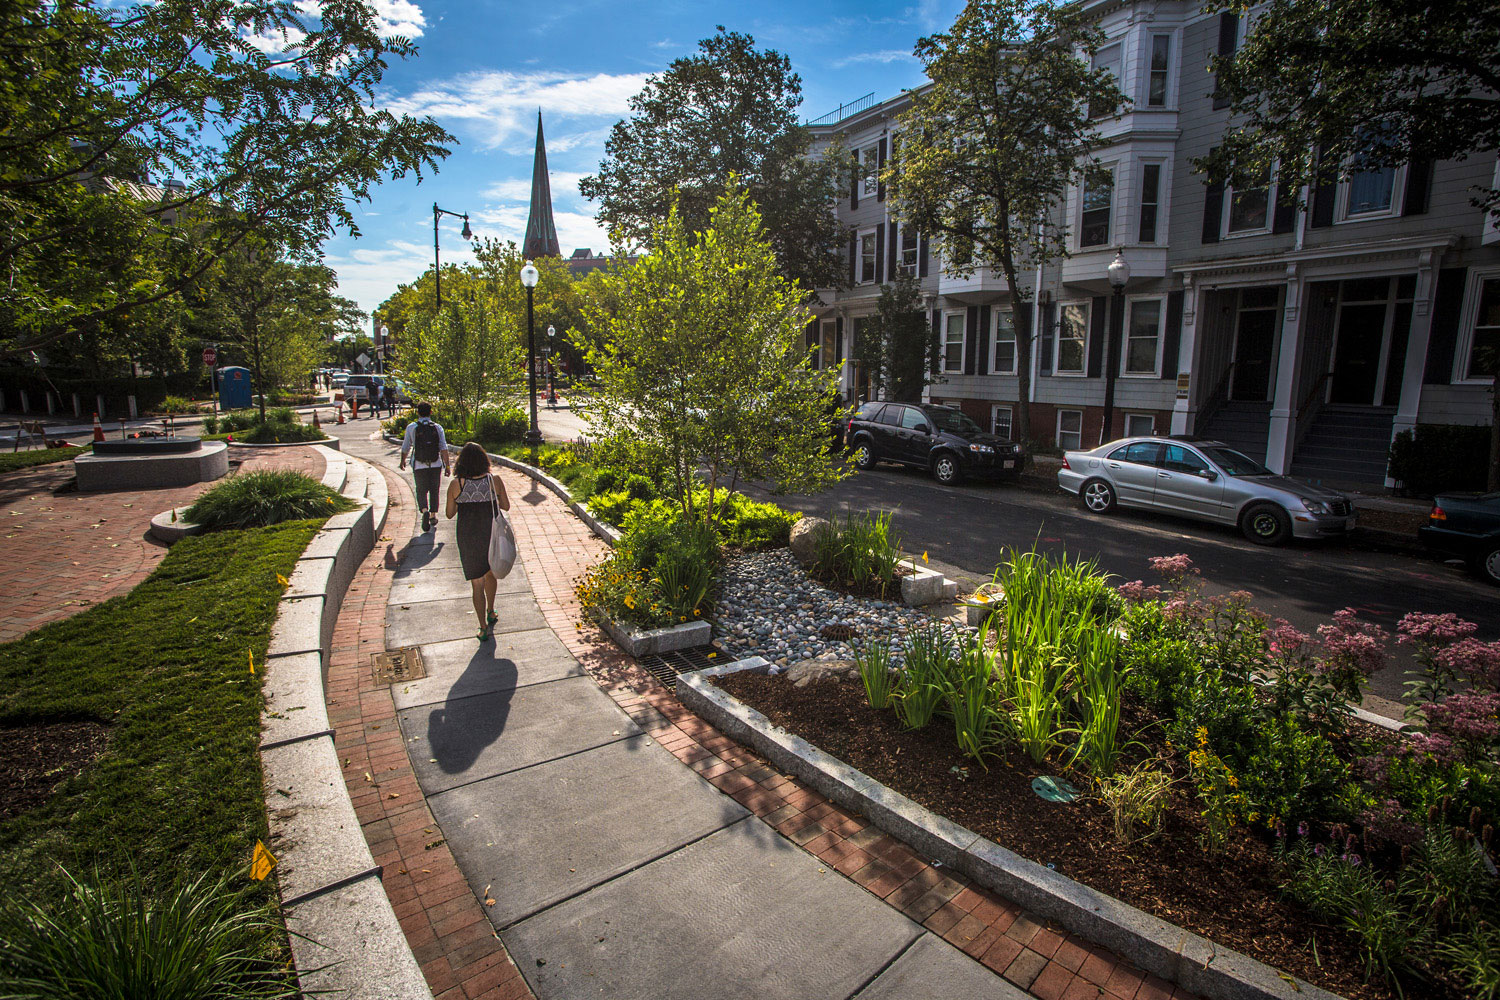 WESTERN AVENUE COMPLETE STREETS